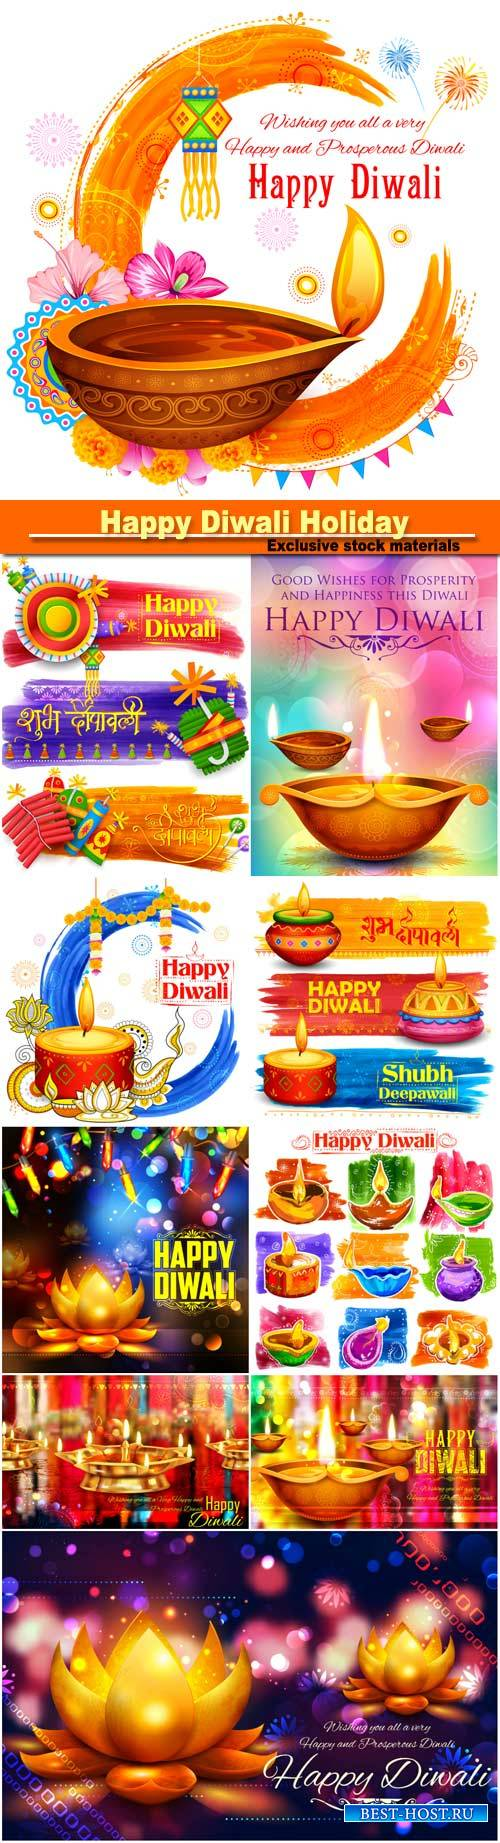 Happy Diwali Holiday background for light festival of India